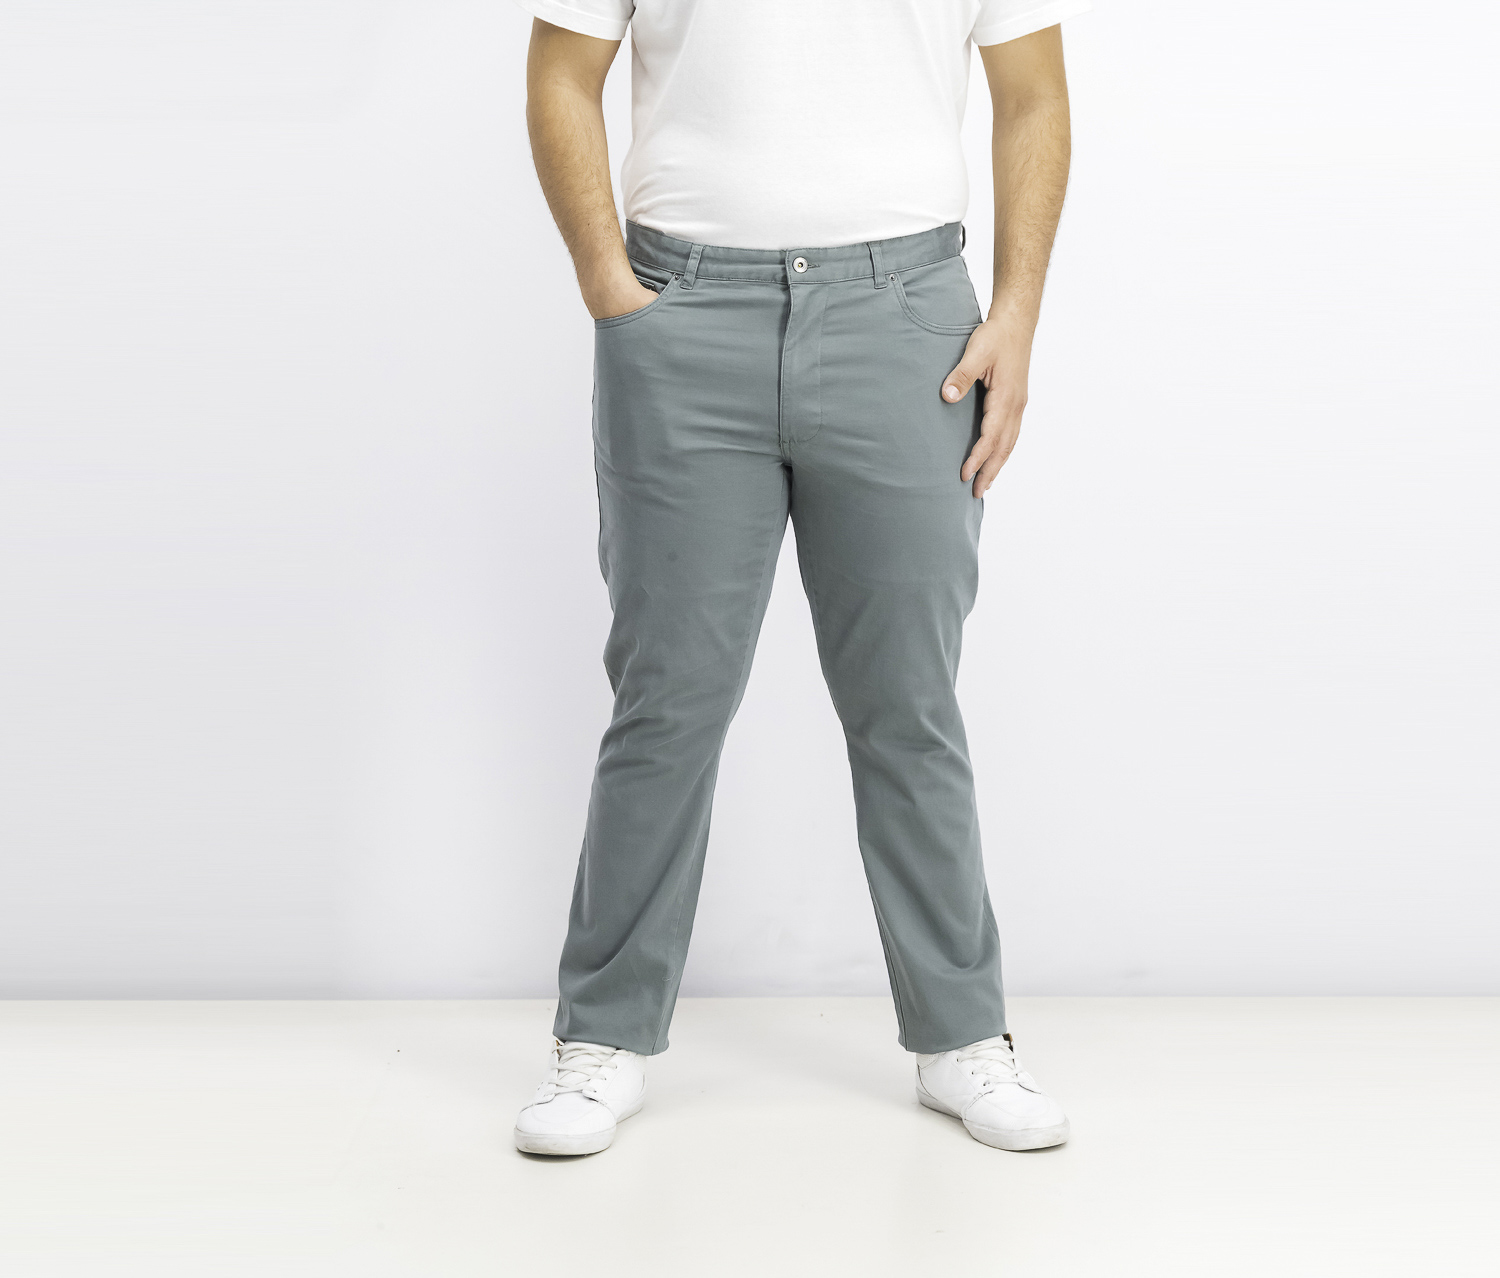 Men's Straight-Fit Stretch Pants, Everard Green